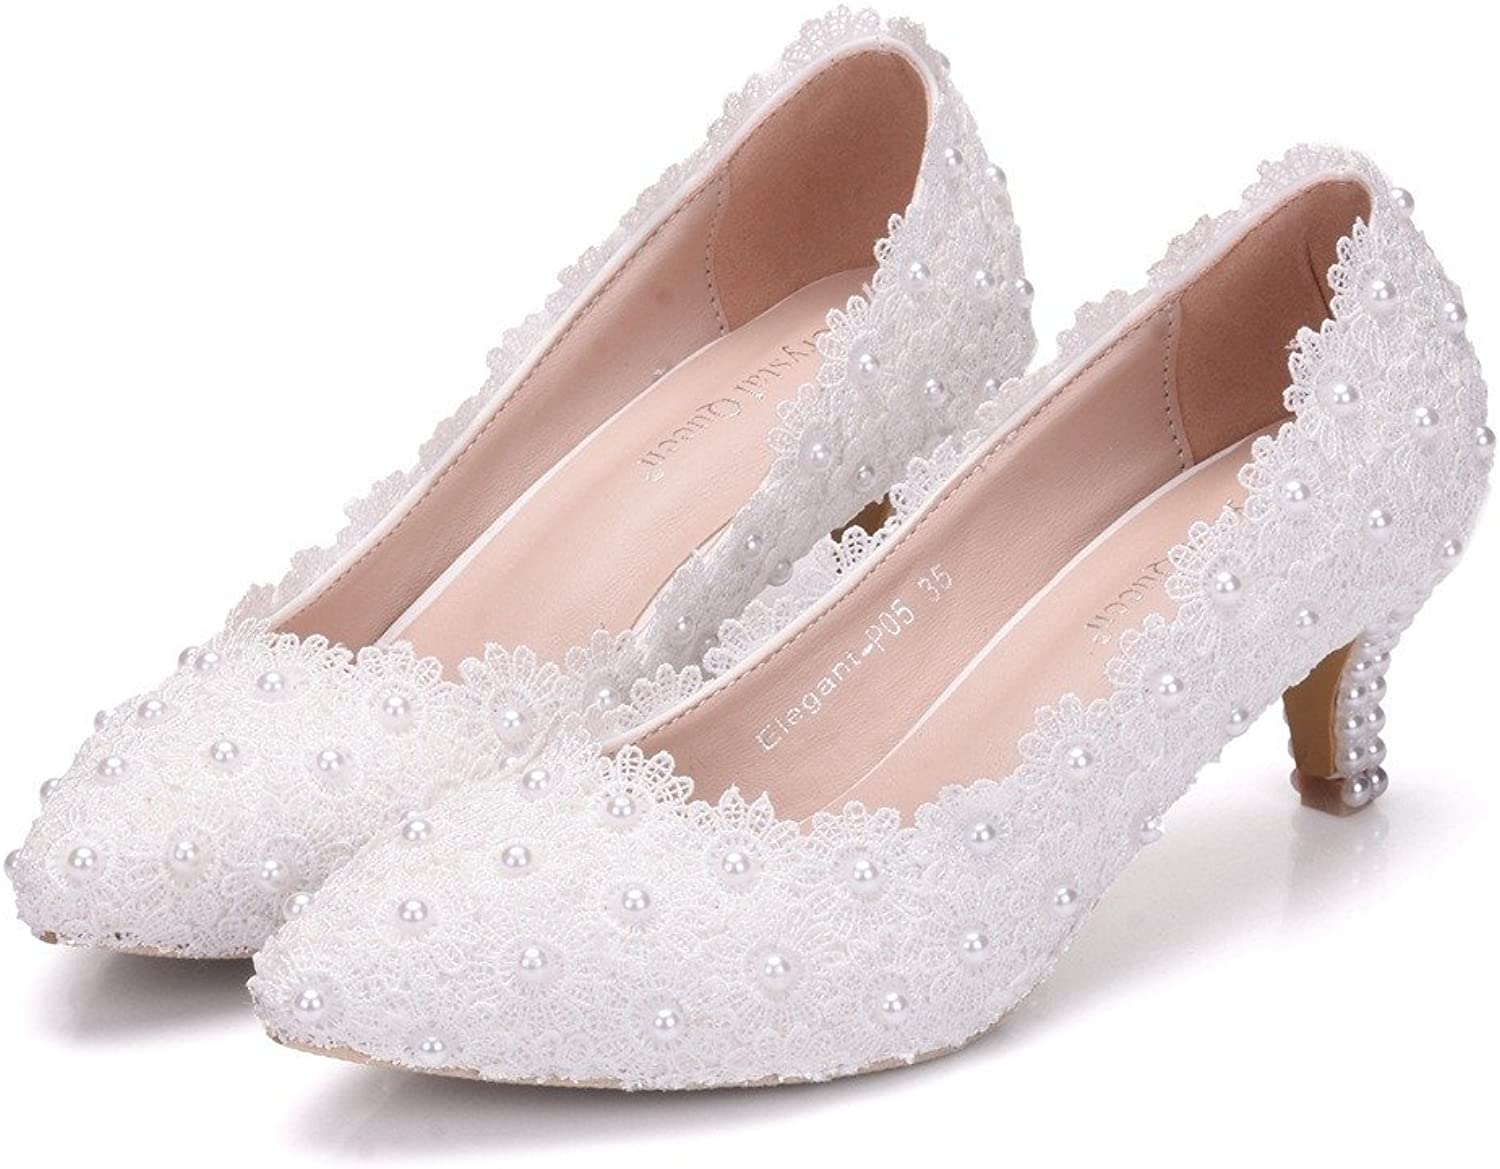 FORTUN Women's Fashion Low-Heeled shoes Pointed Toe shoes Pearl Lace Shallow Mouth